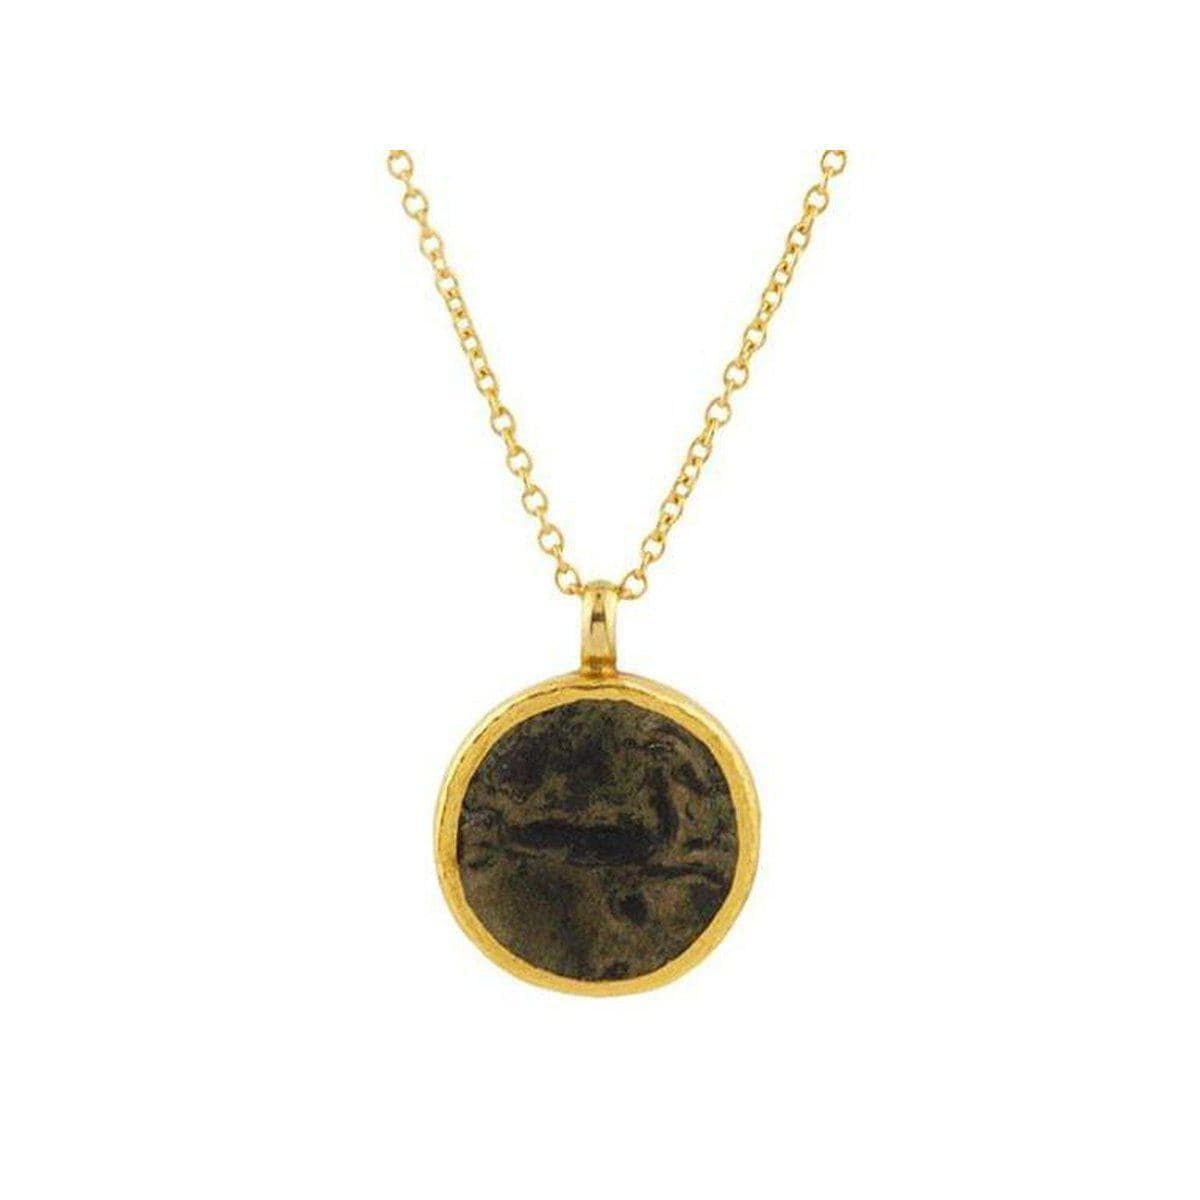 Antiquities 24K Gold Coin Necklace - N-U22960-CN-GURHAN-Renee Taylor Gallery